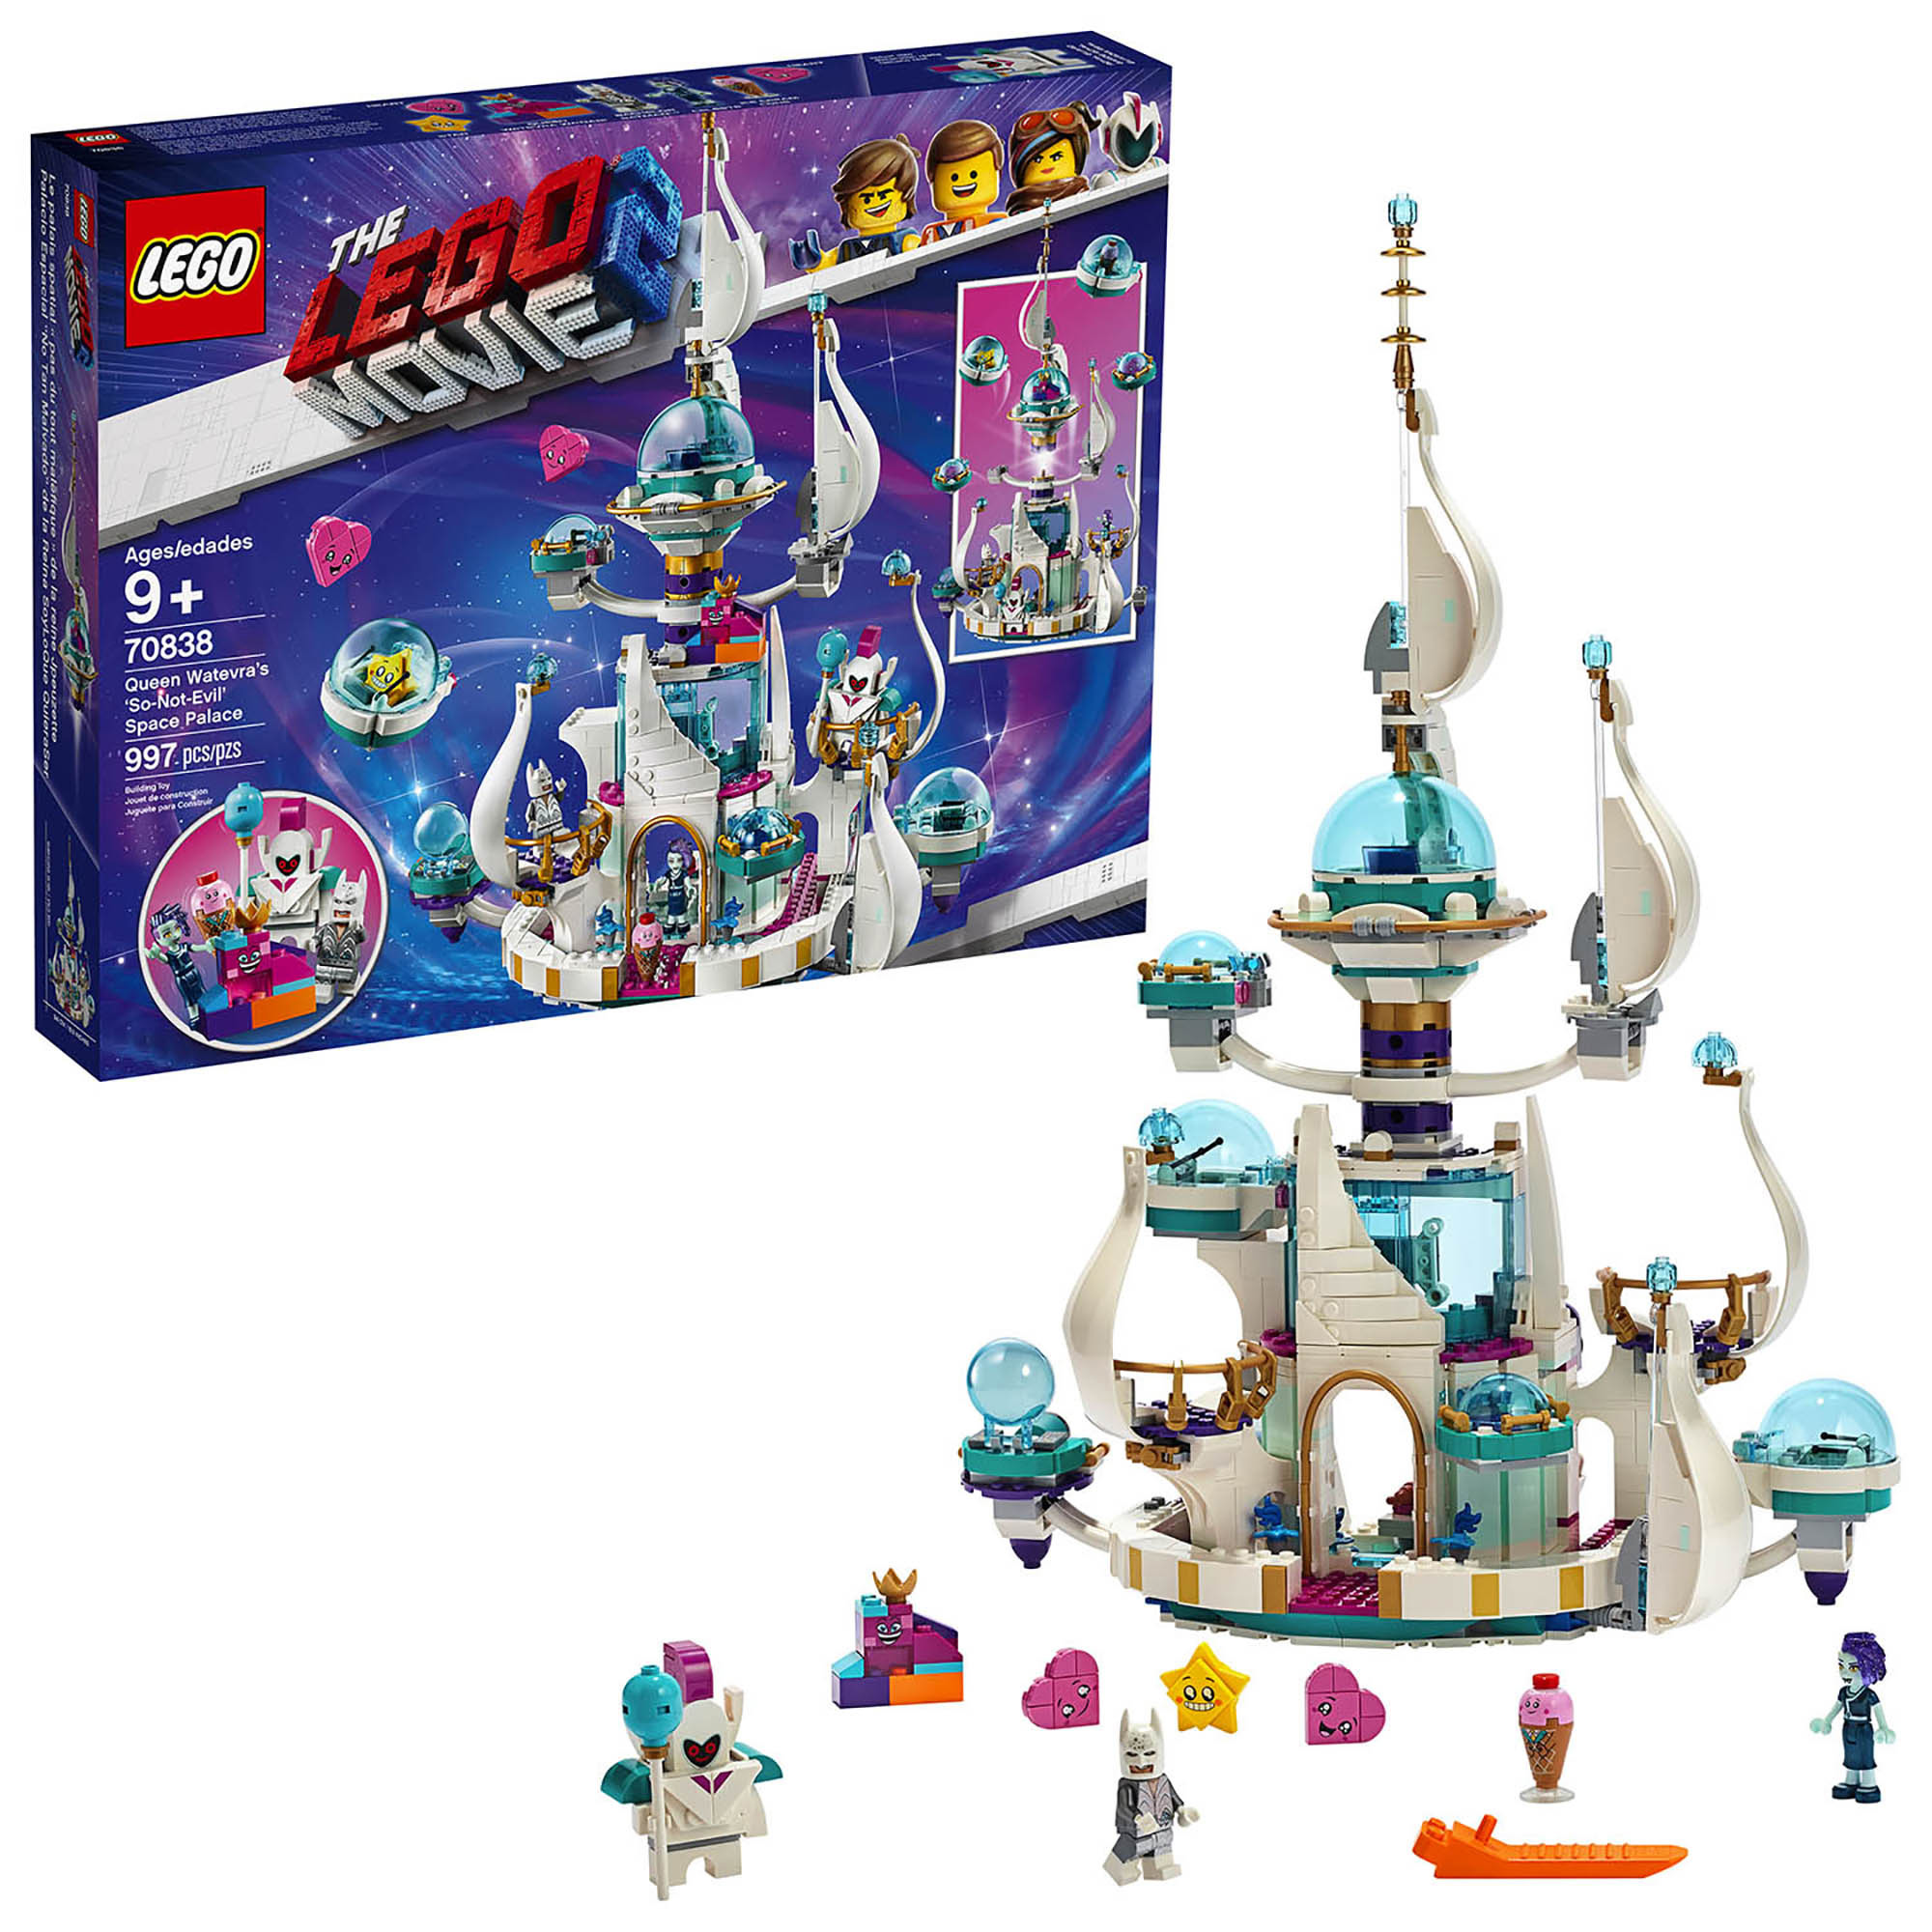 LEGO Movie Queen Watevra's 'So-Not-Evil' Space Pala